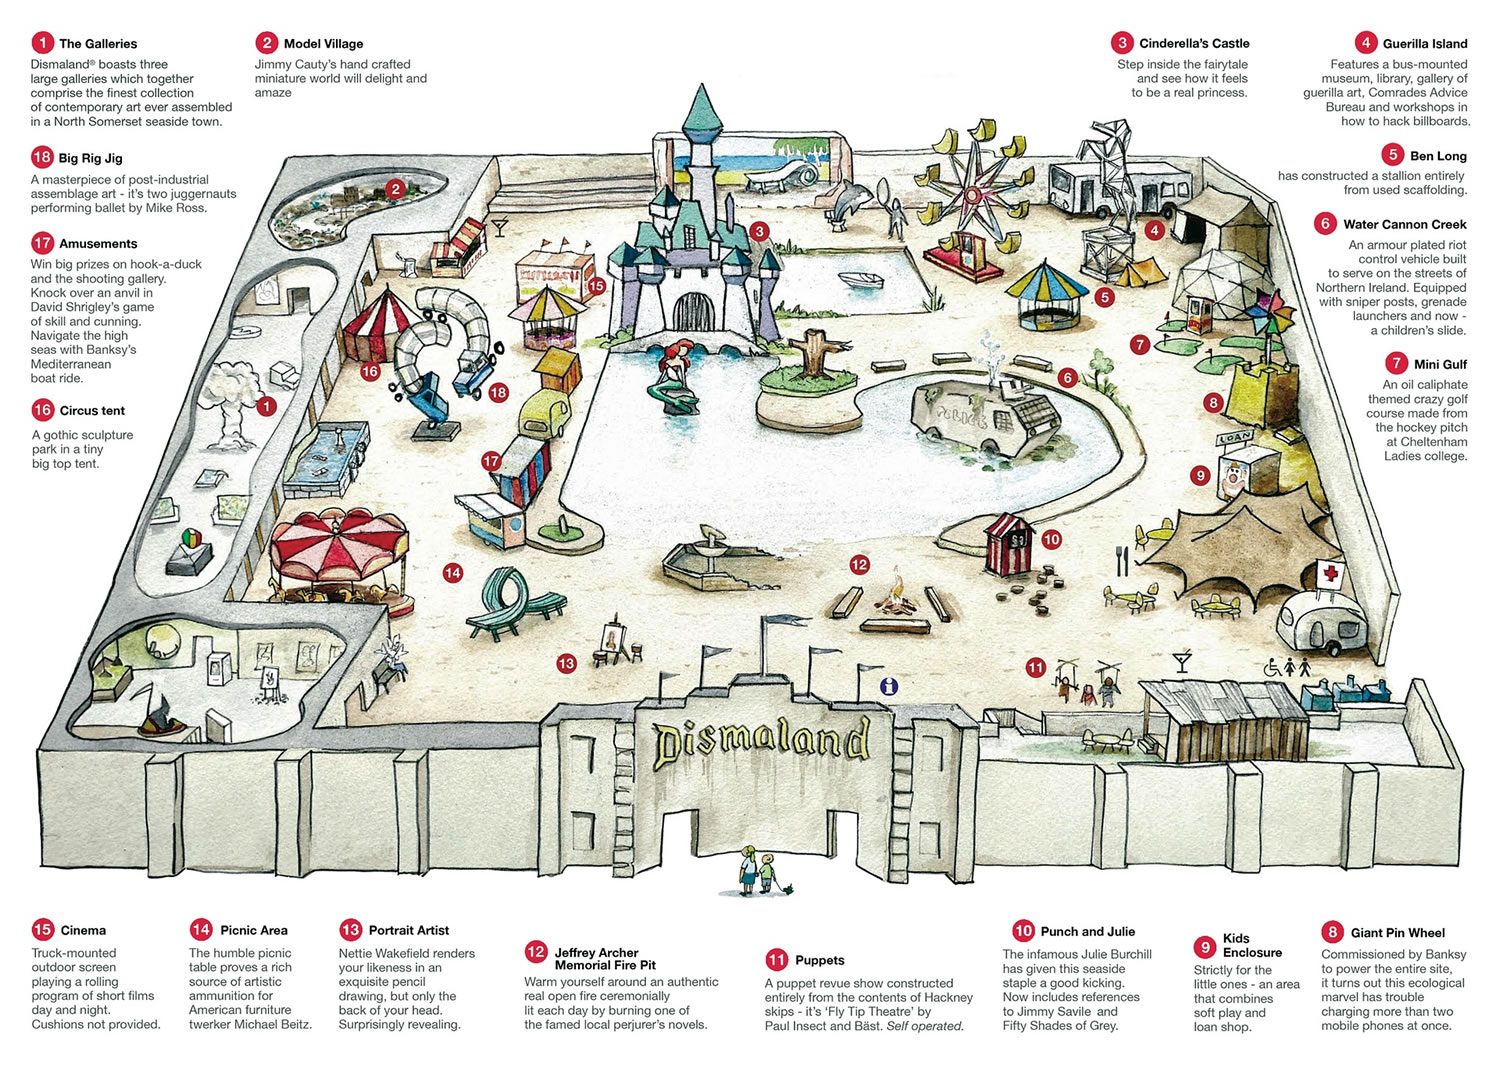 Banksys Dismaland Theme Park If You Cant Go At Least Watch The Trailer